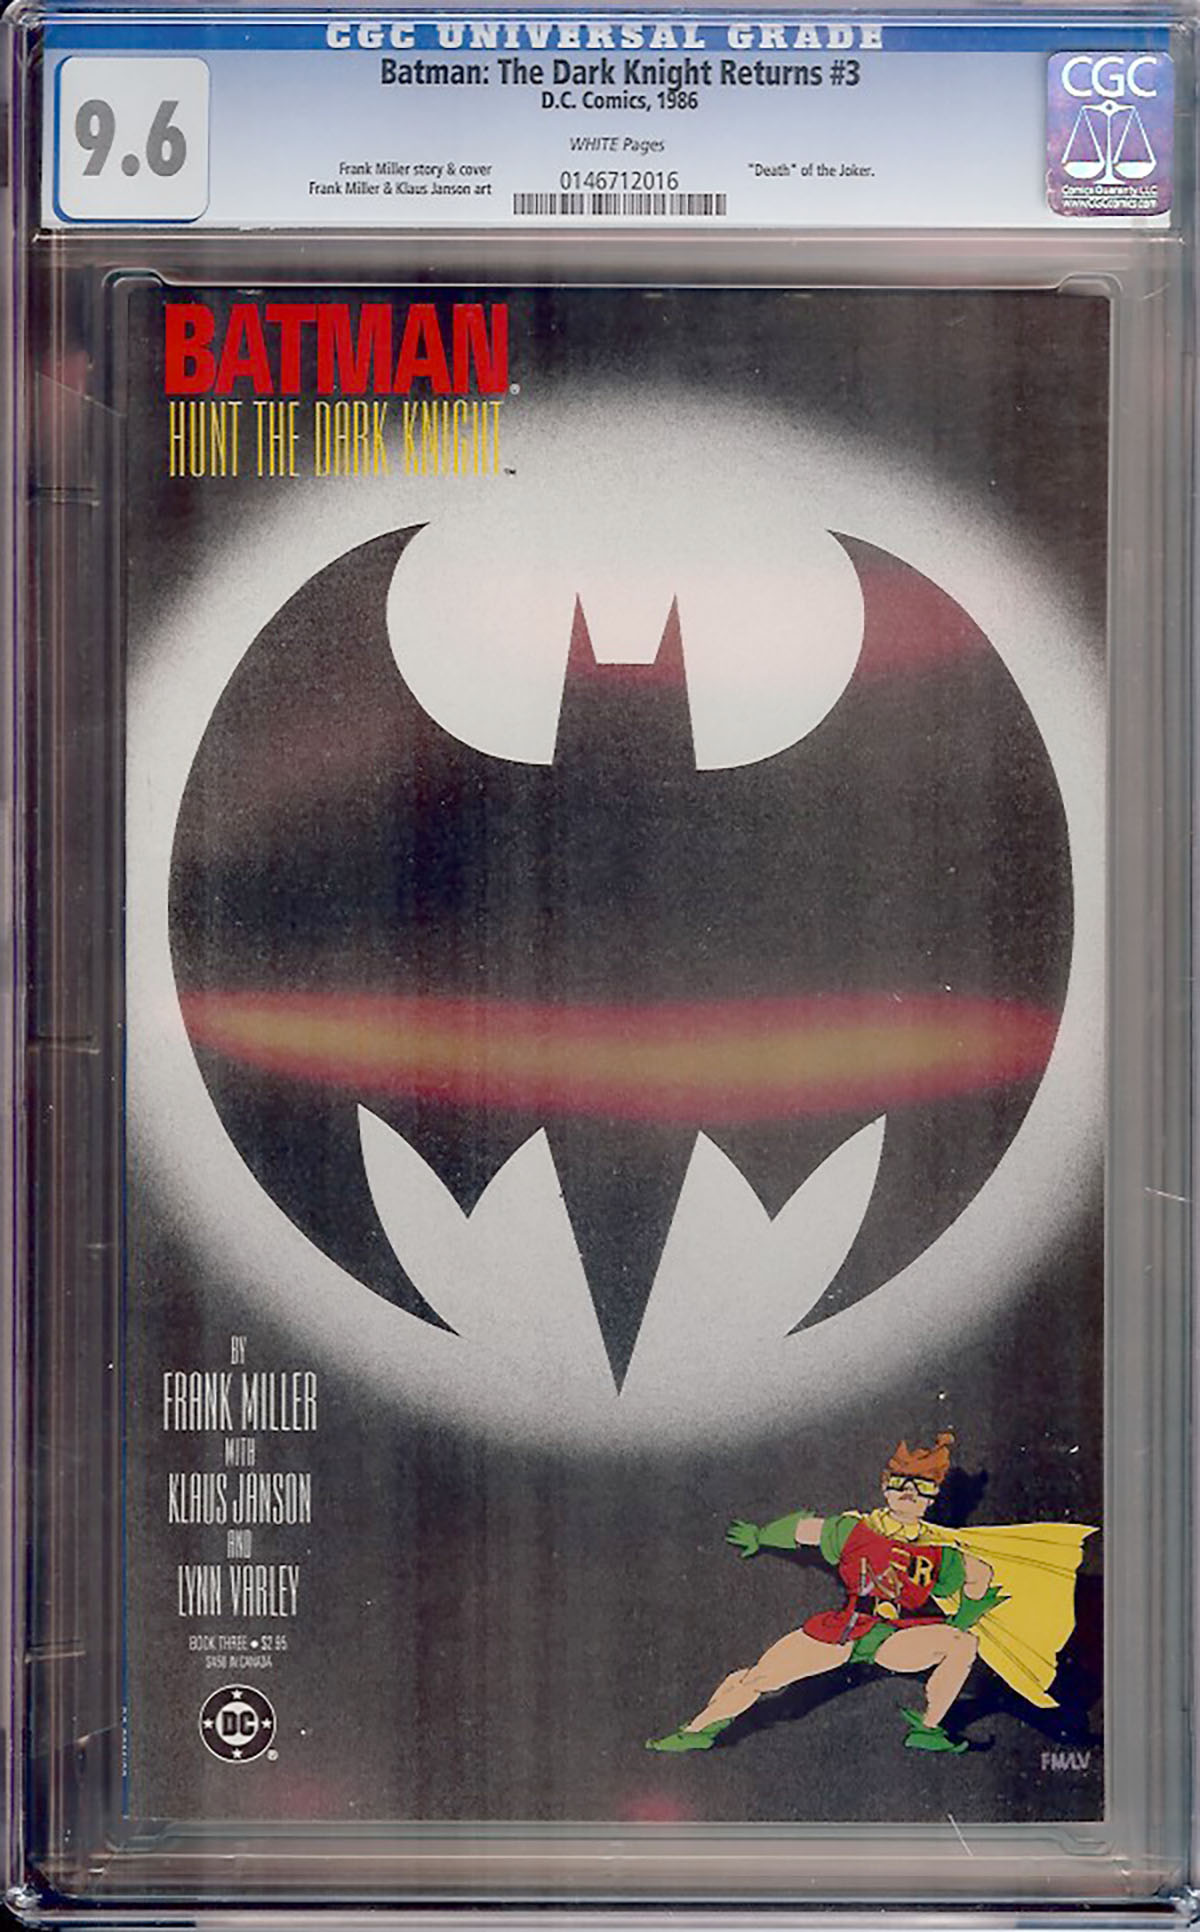 Batman: The Dark Knight Returns #3 CGC 9.6 w